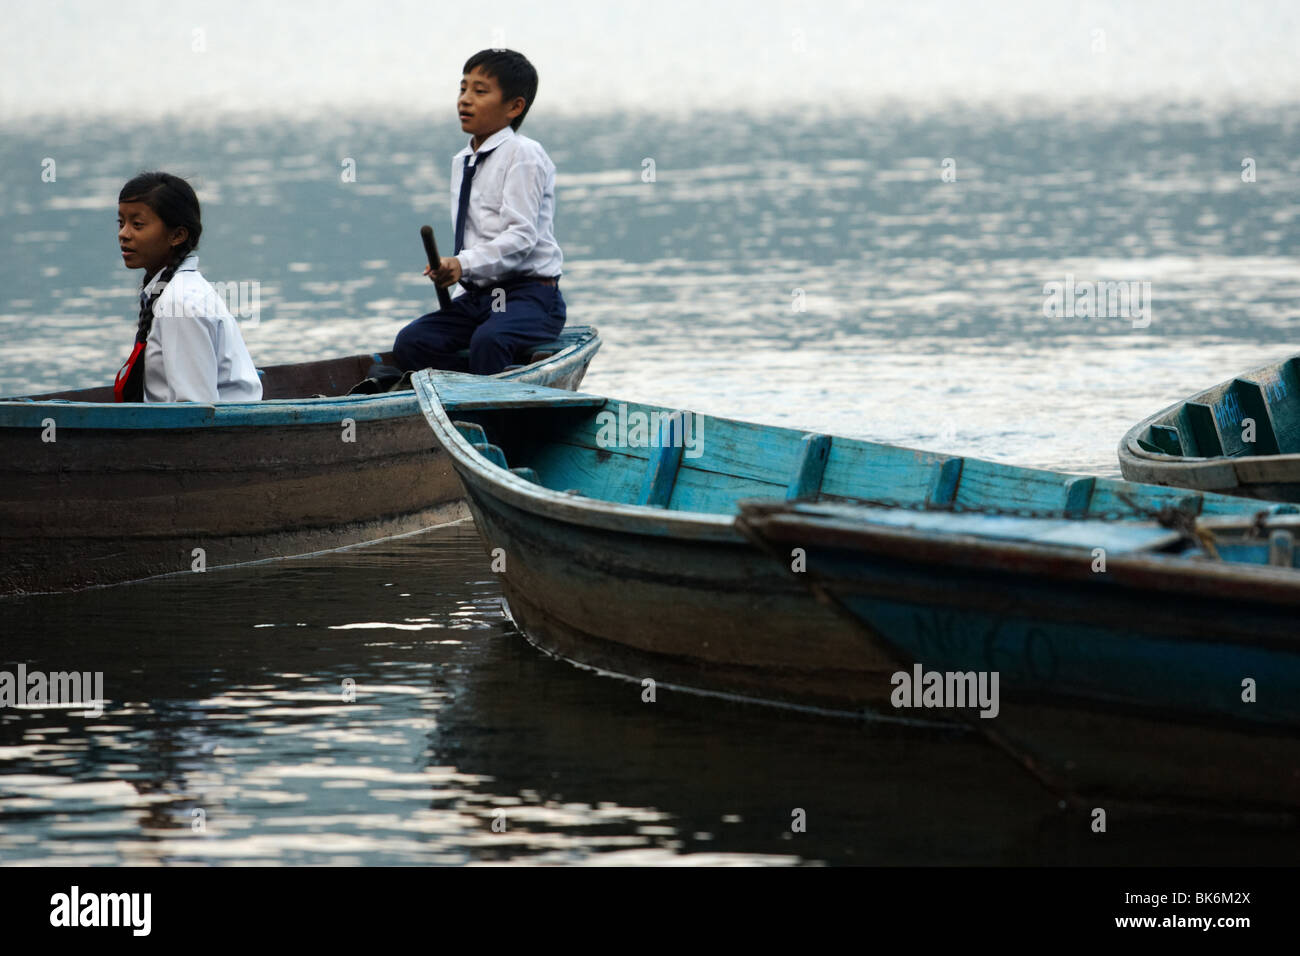 School children ride a canoe across Pewha Lake in Pokhara, Nepal on Monday October 26, 2009. - Stock Image